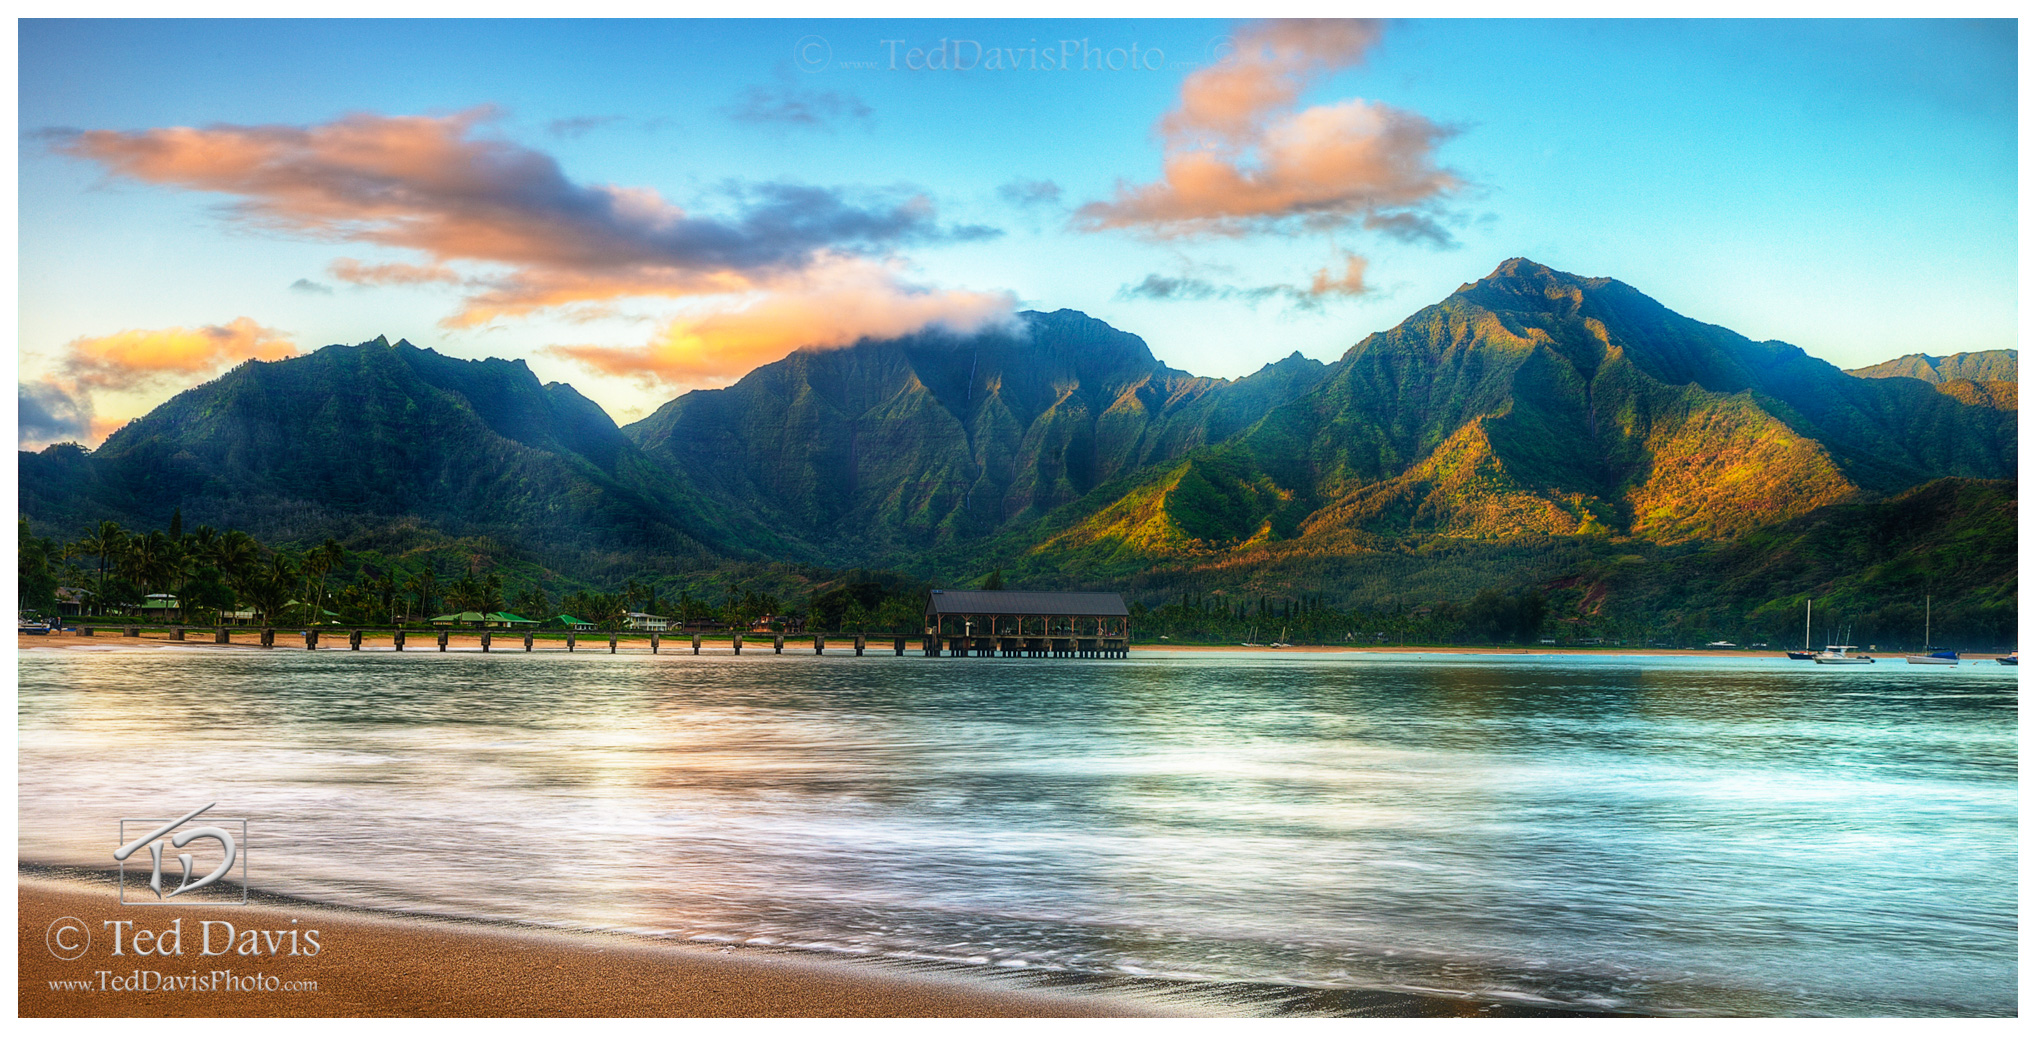 Limited Edition of 100 The rising sun over Kaua'i can make even the most beautiful landscapes drop-dead gorgeous. Standing in...